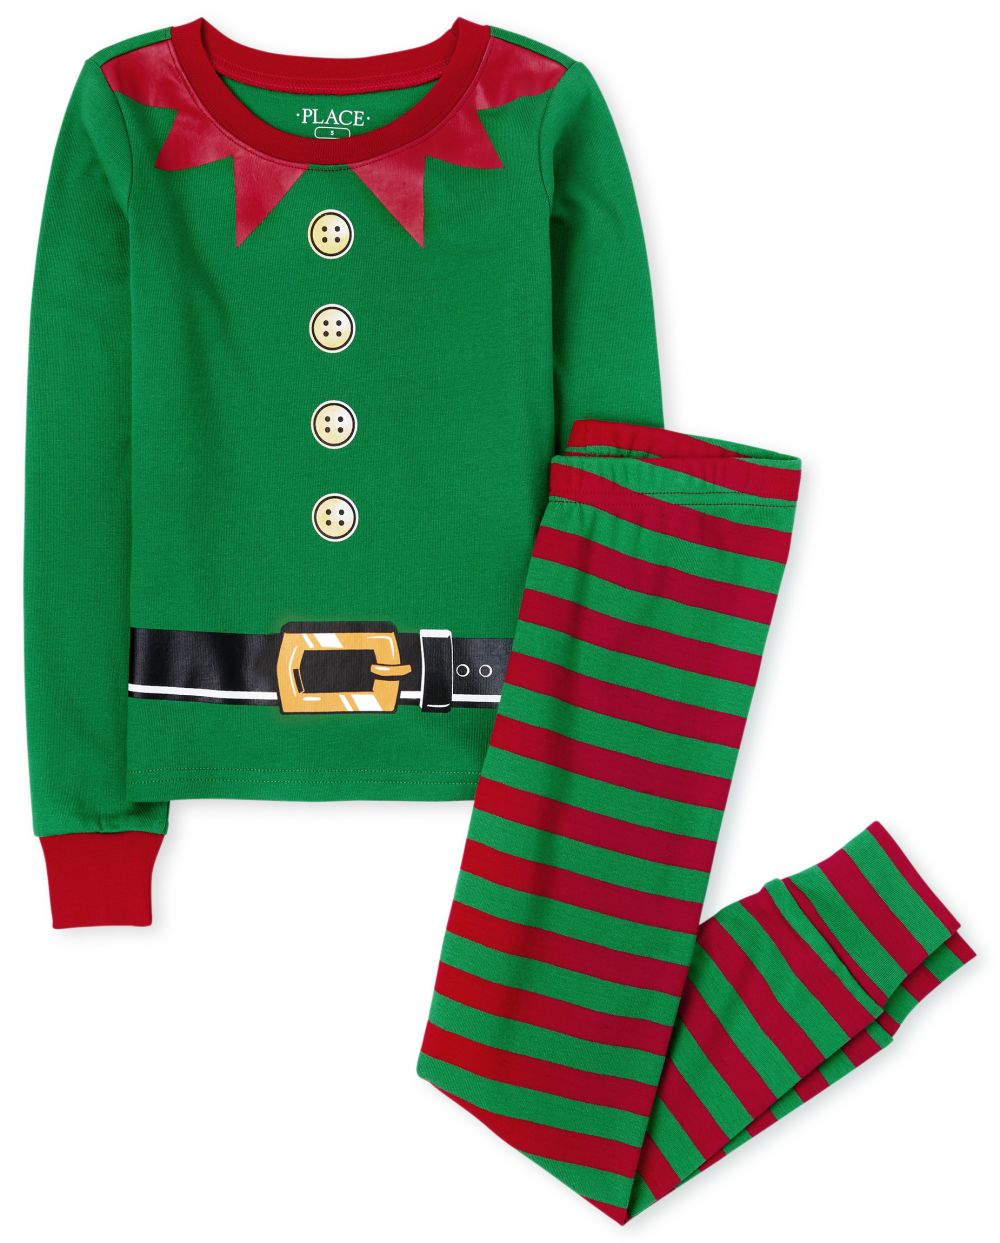 Unisex Kids Matching Family Elf Snug Fit Cotton Pajamas